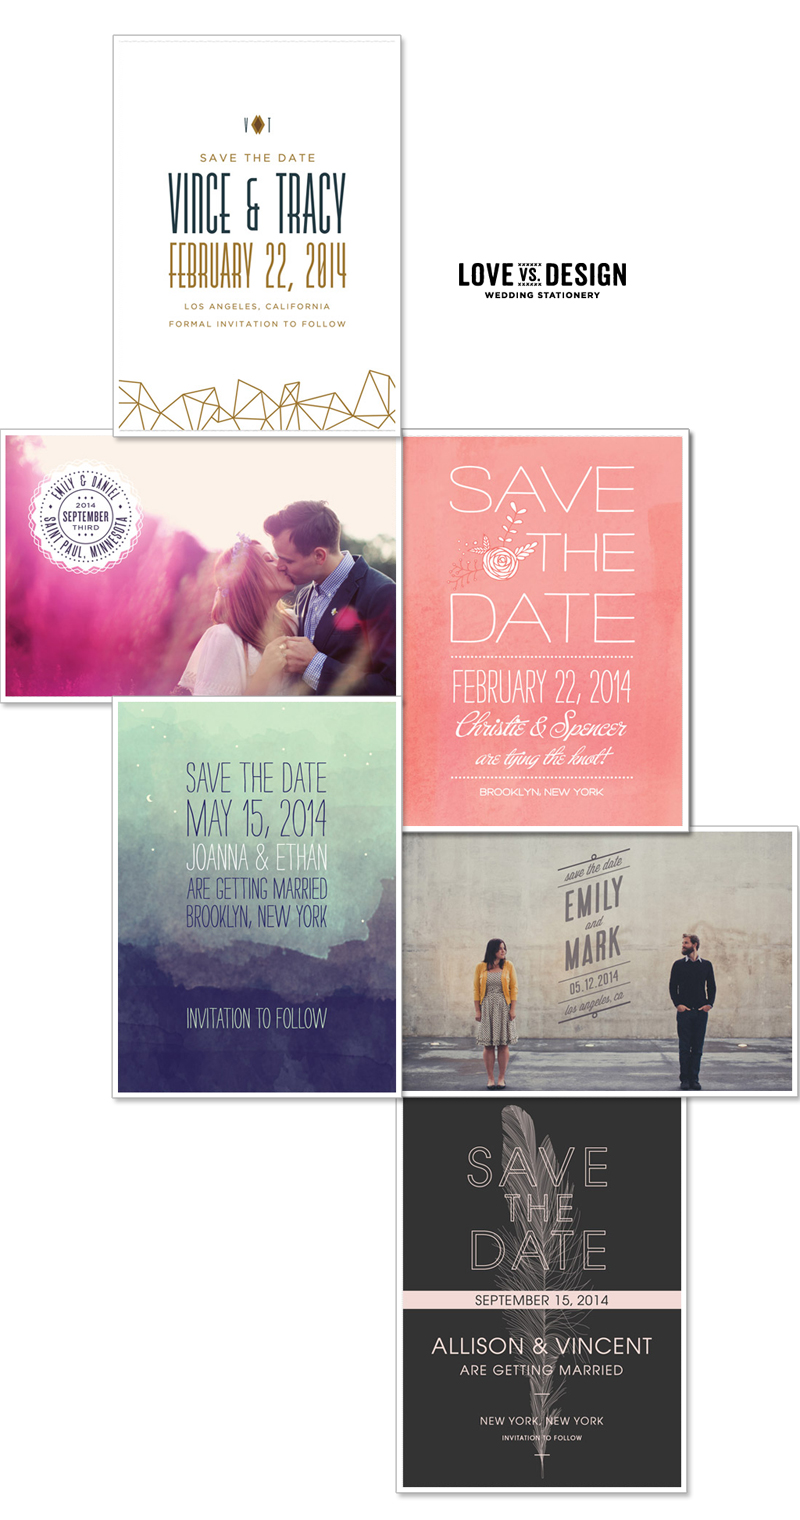 save-the-dates-love-vs-design